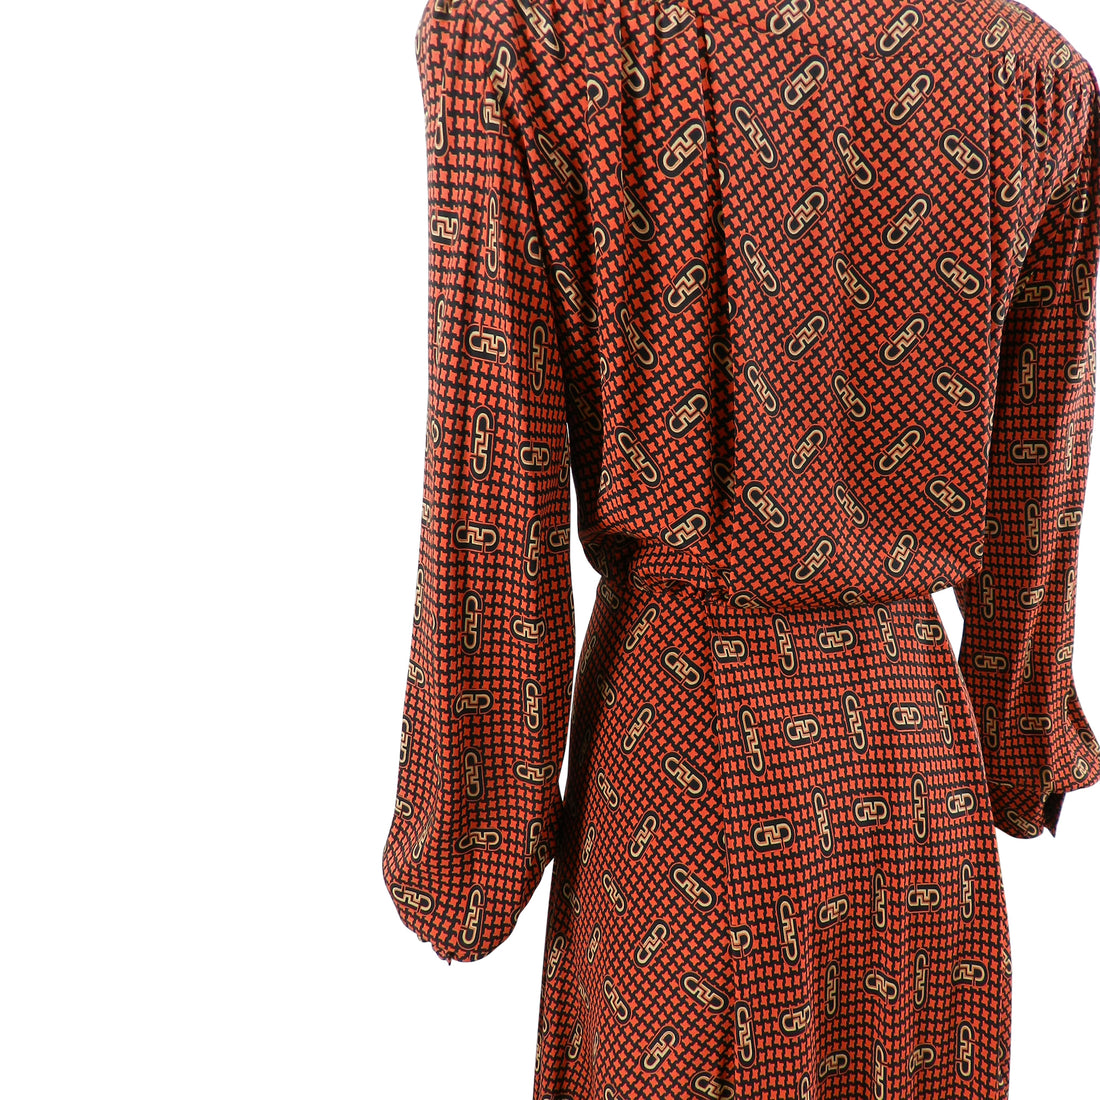 Salvatore Ferragamo vintage 1970's Silk Logo Shirt Dress